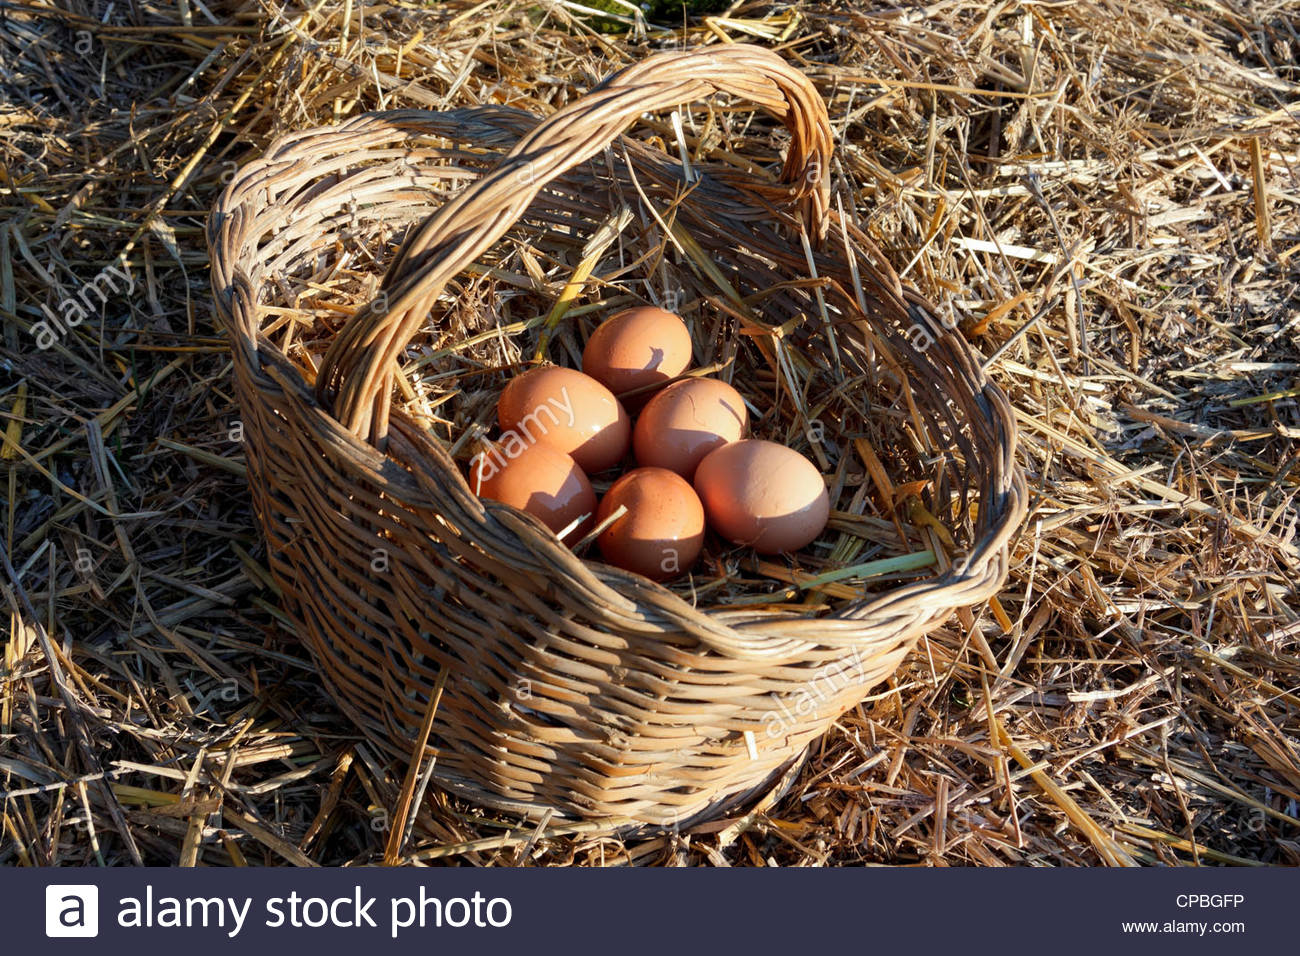 Fresh chicken eggs in a basket with straw - Stock Image